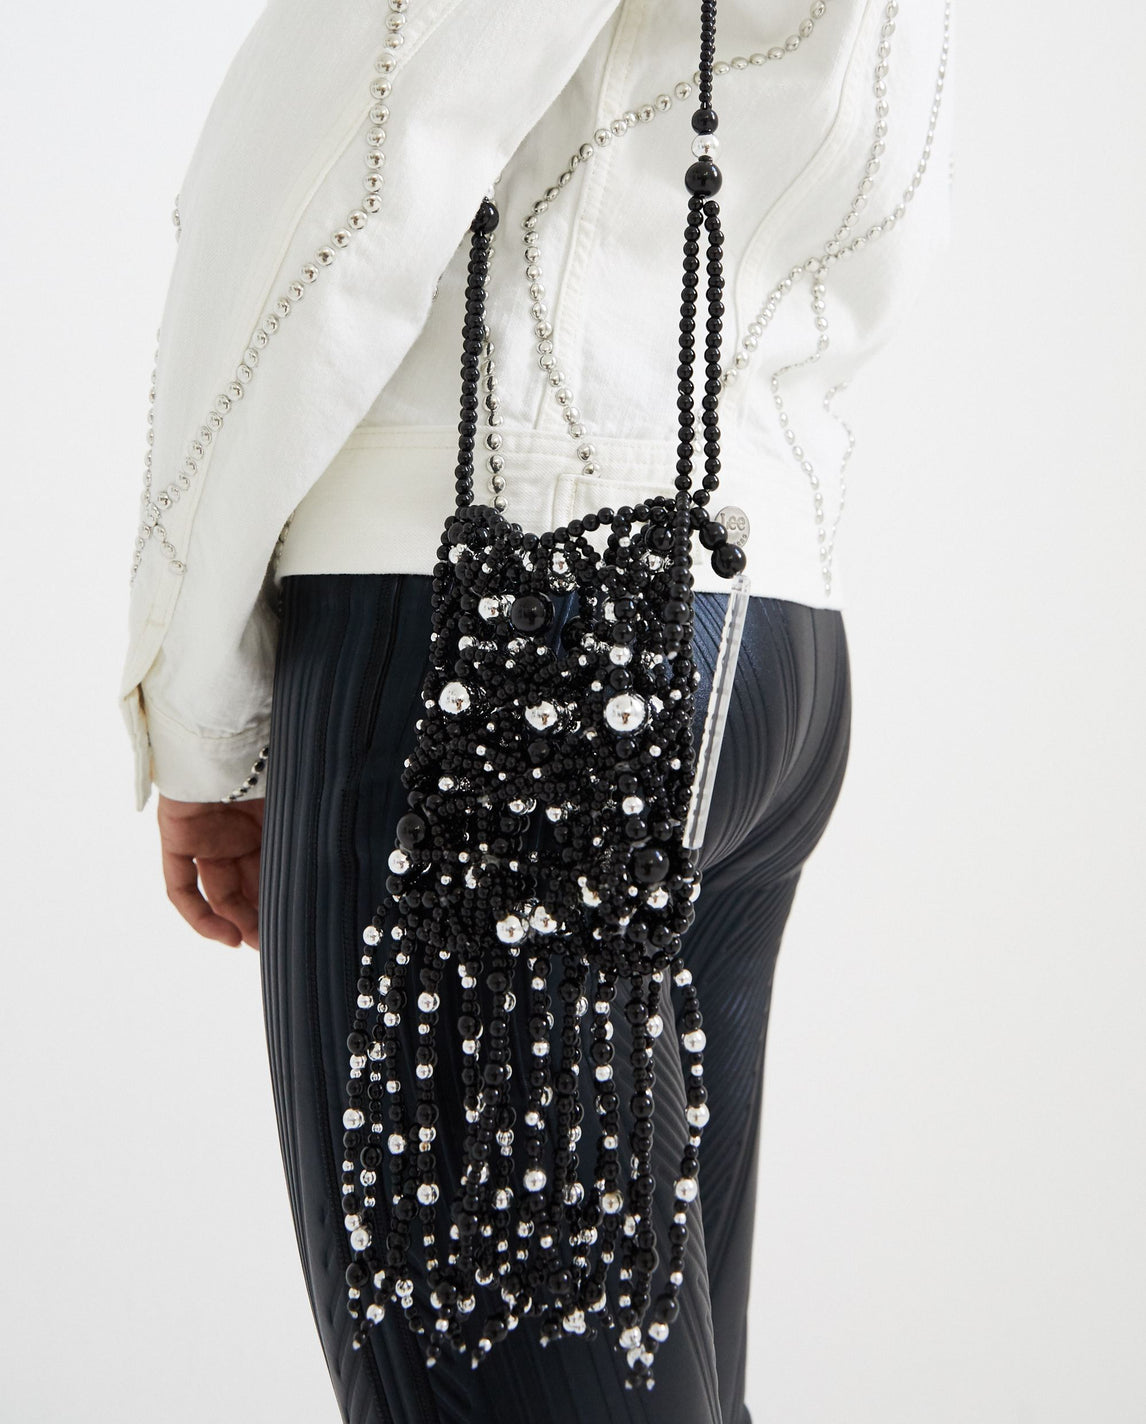 MACHINE-A Exclusive Bubble Jellyfish Bag - Black WOMENS SUSAN FANG